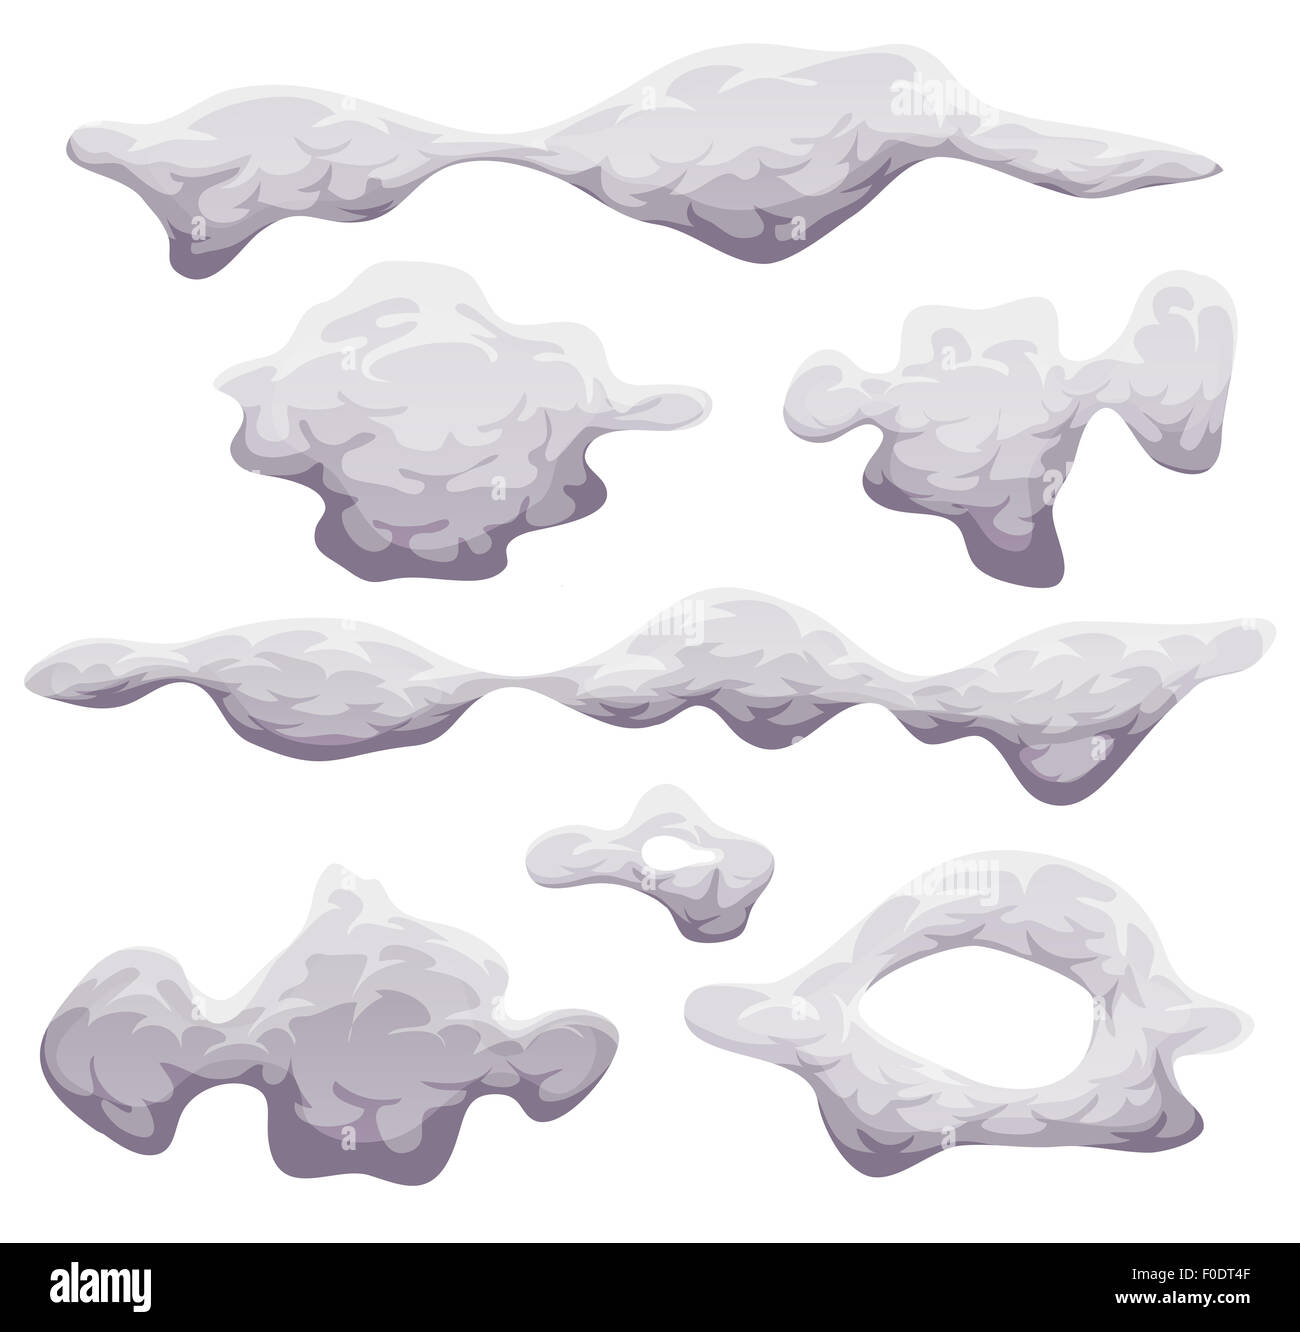 Illustration of a set of cartoon funny clouds, smoke patterns and fog icons isolated on white background - Stock Image